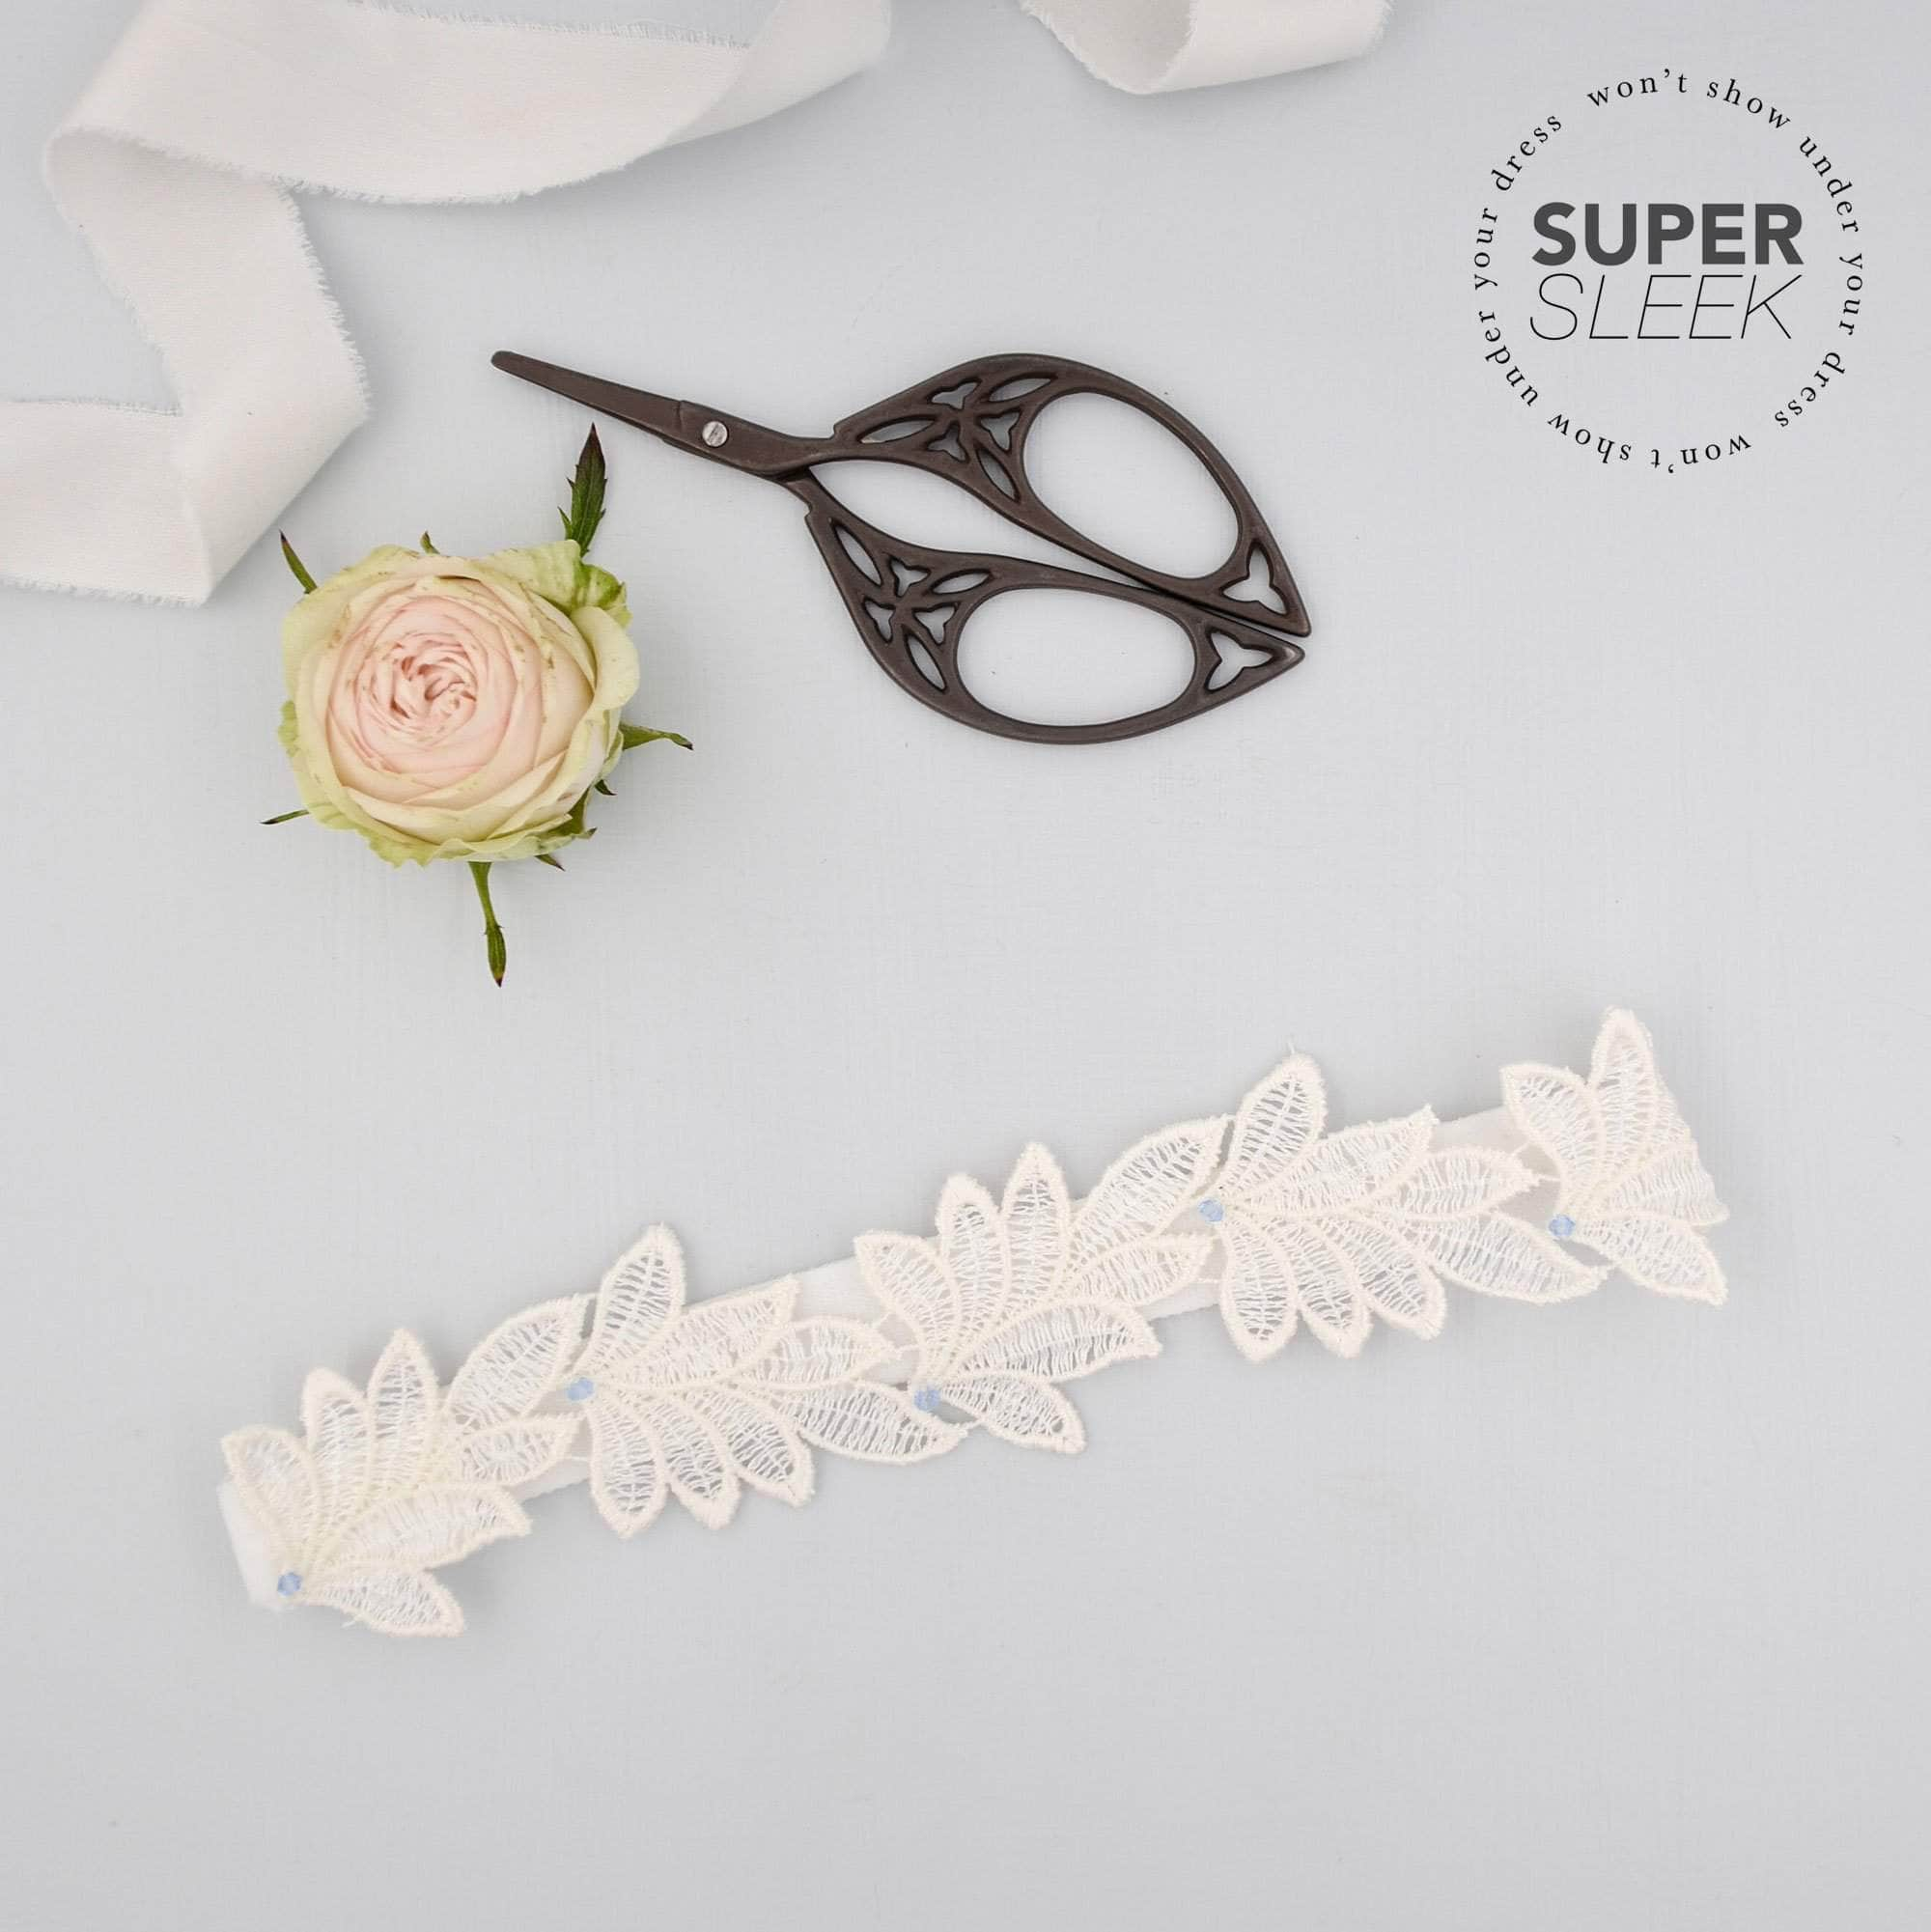 Super sleek lace leaf wedding garter with 'something blue' crystals - 'Elme'